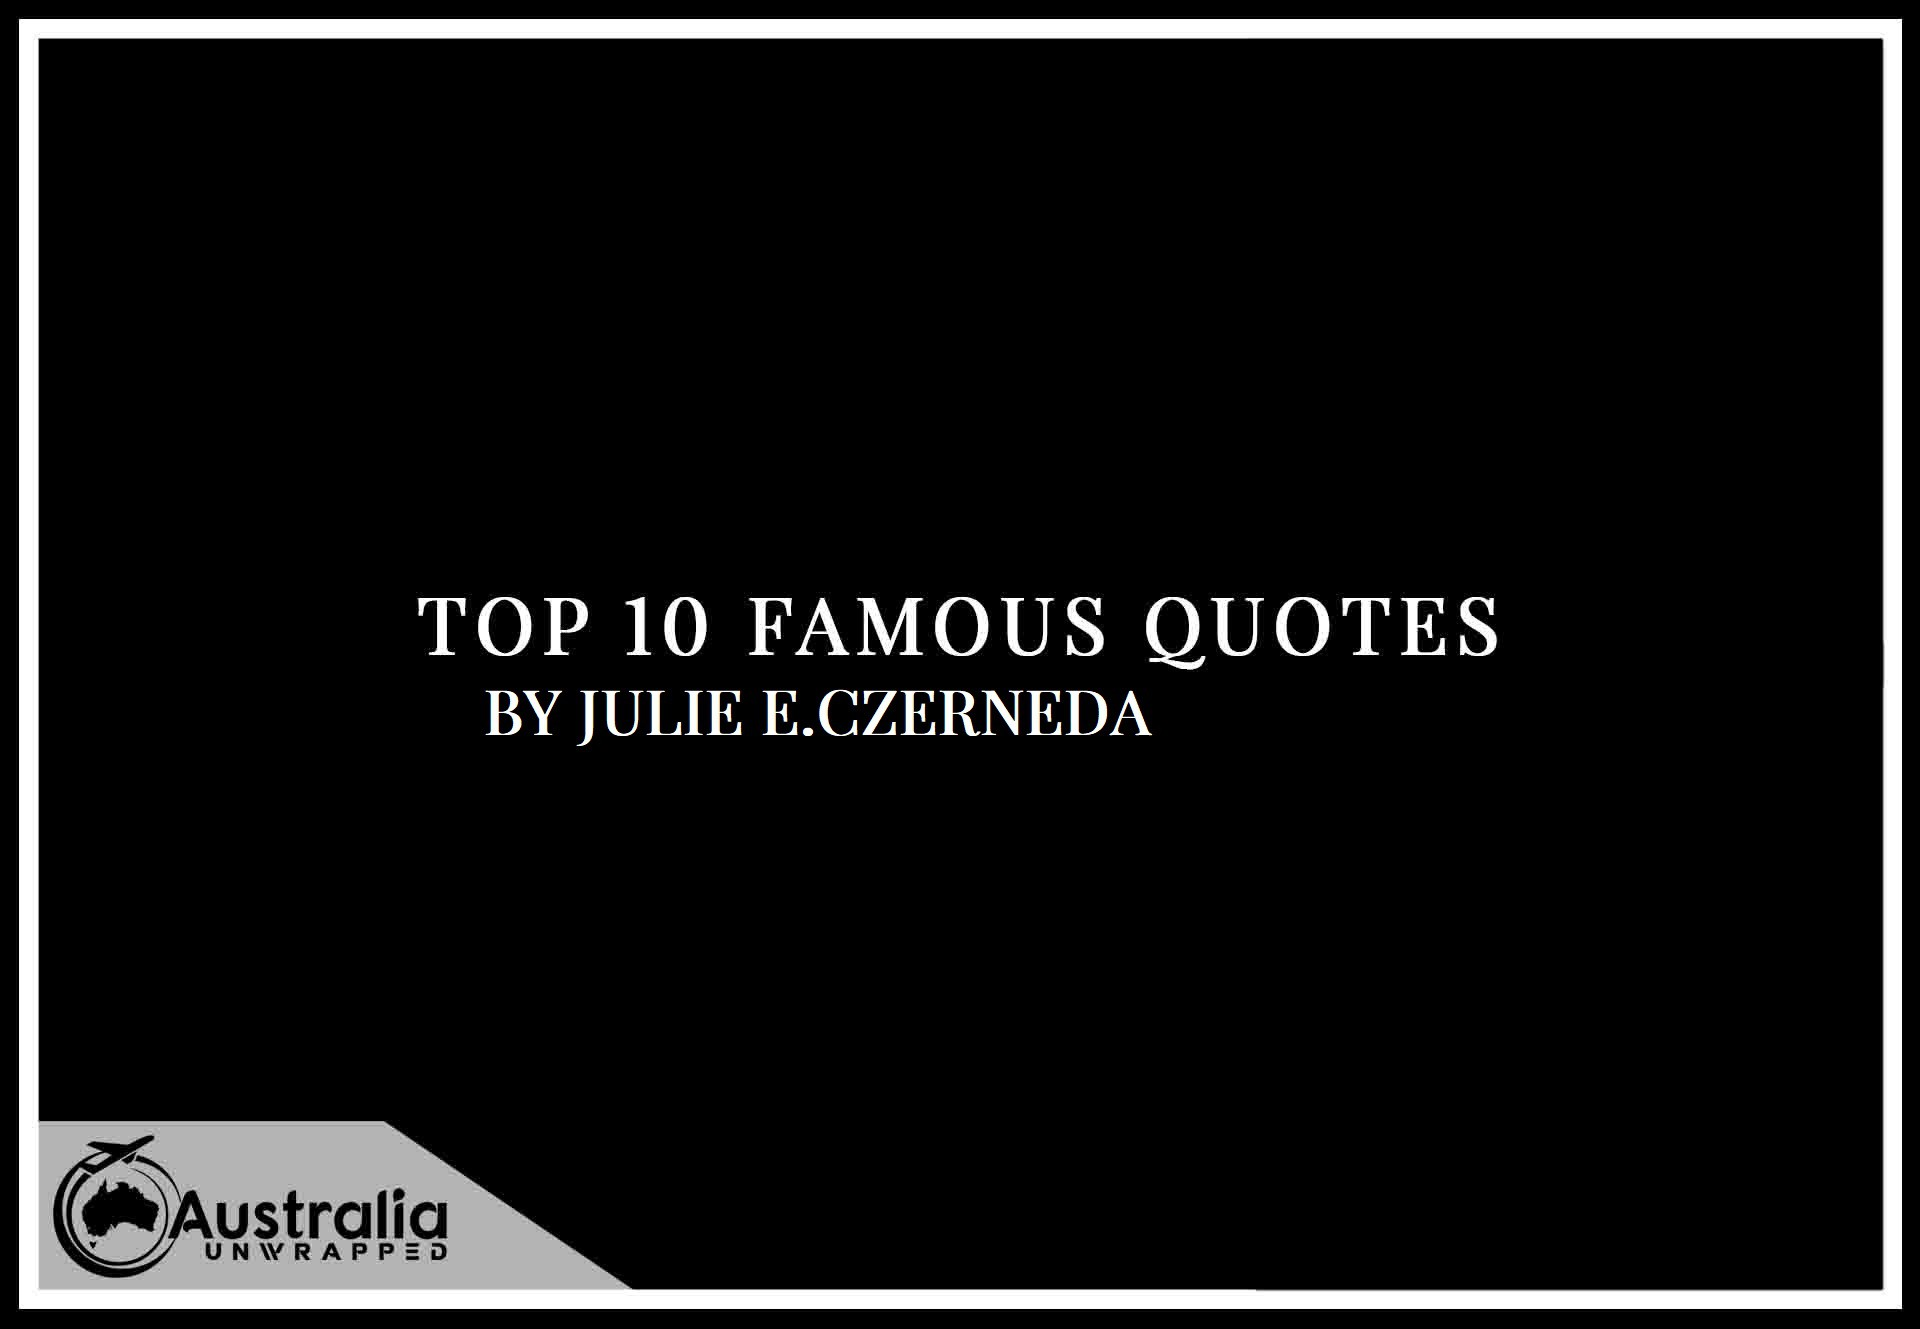 Top 10 Famous Quotes by Author Julie E. Czerneda